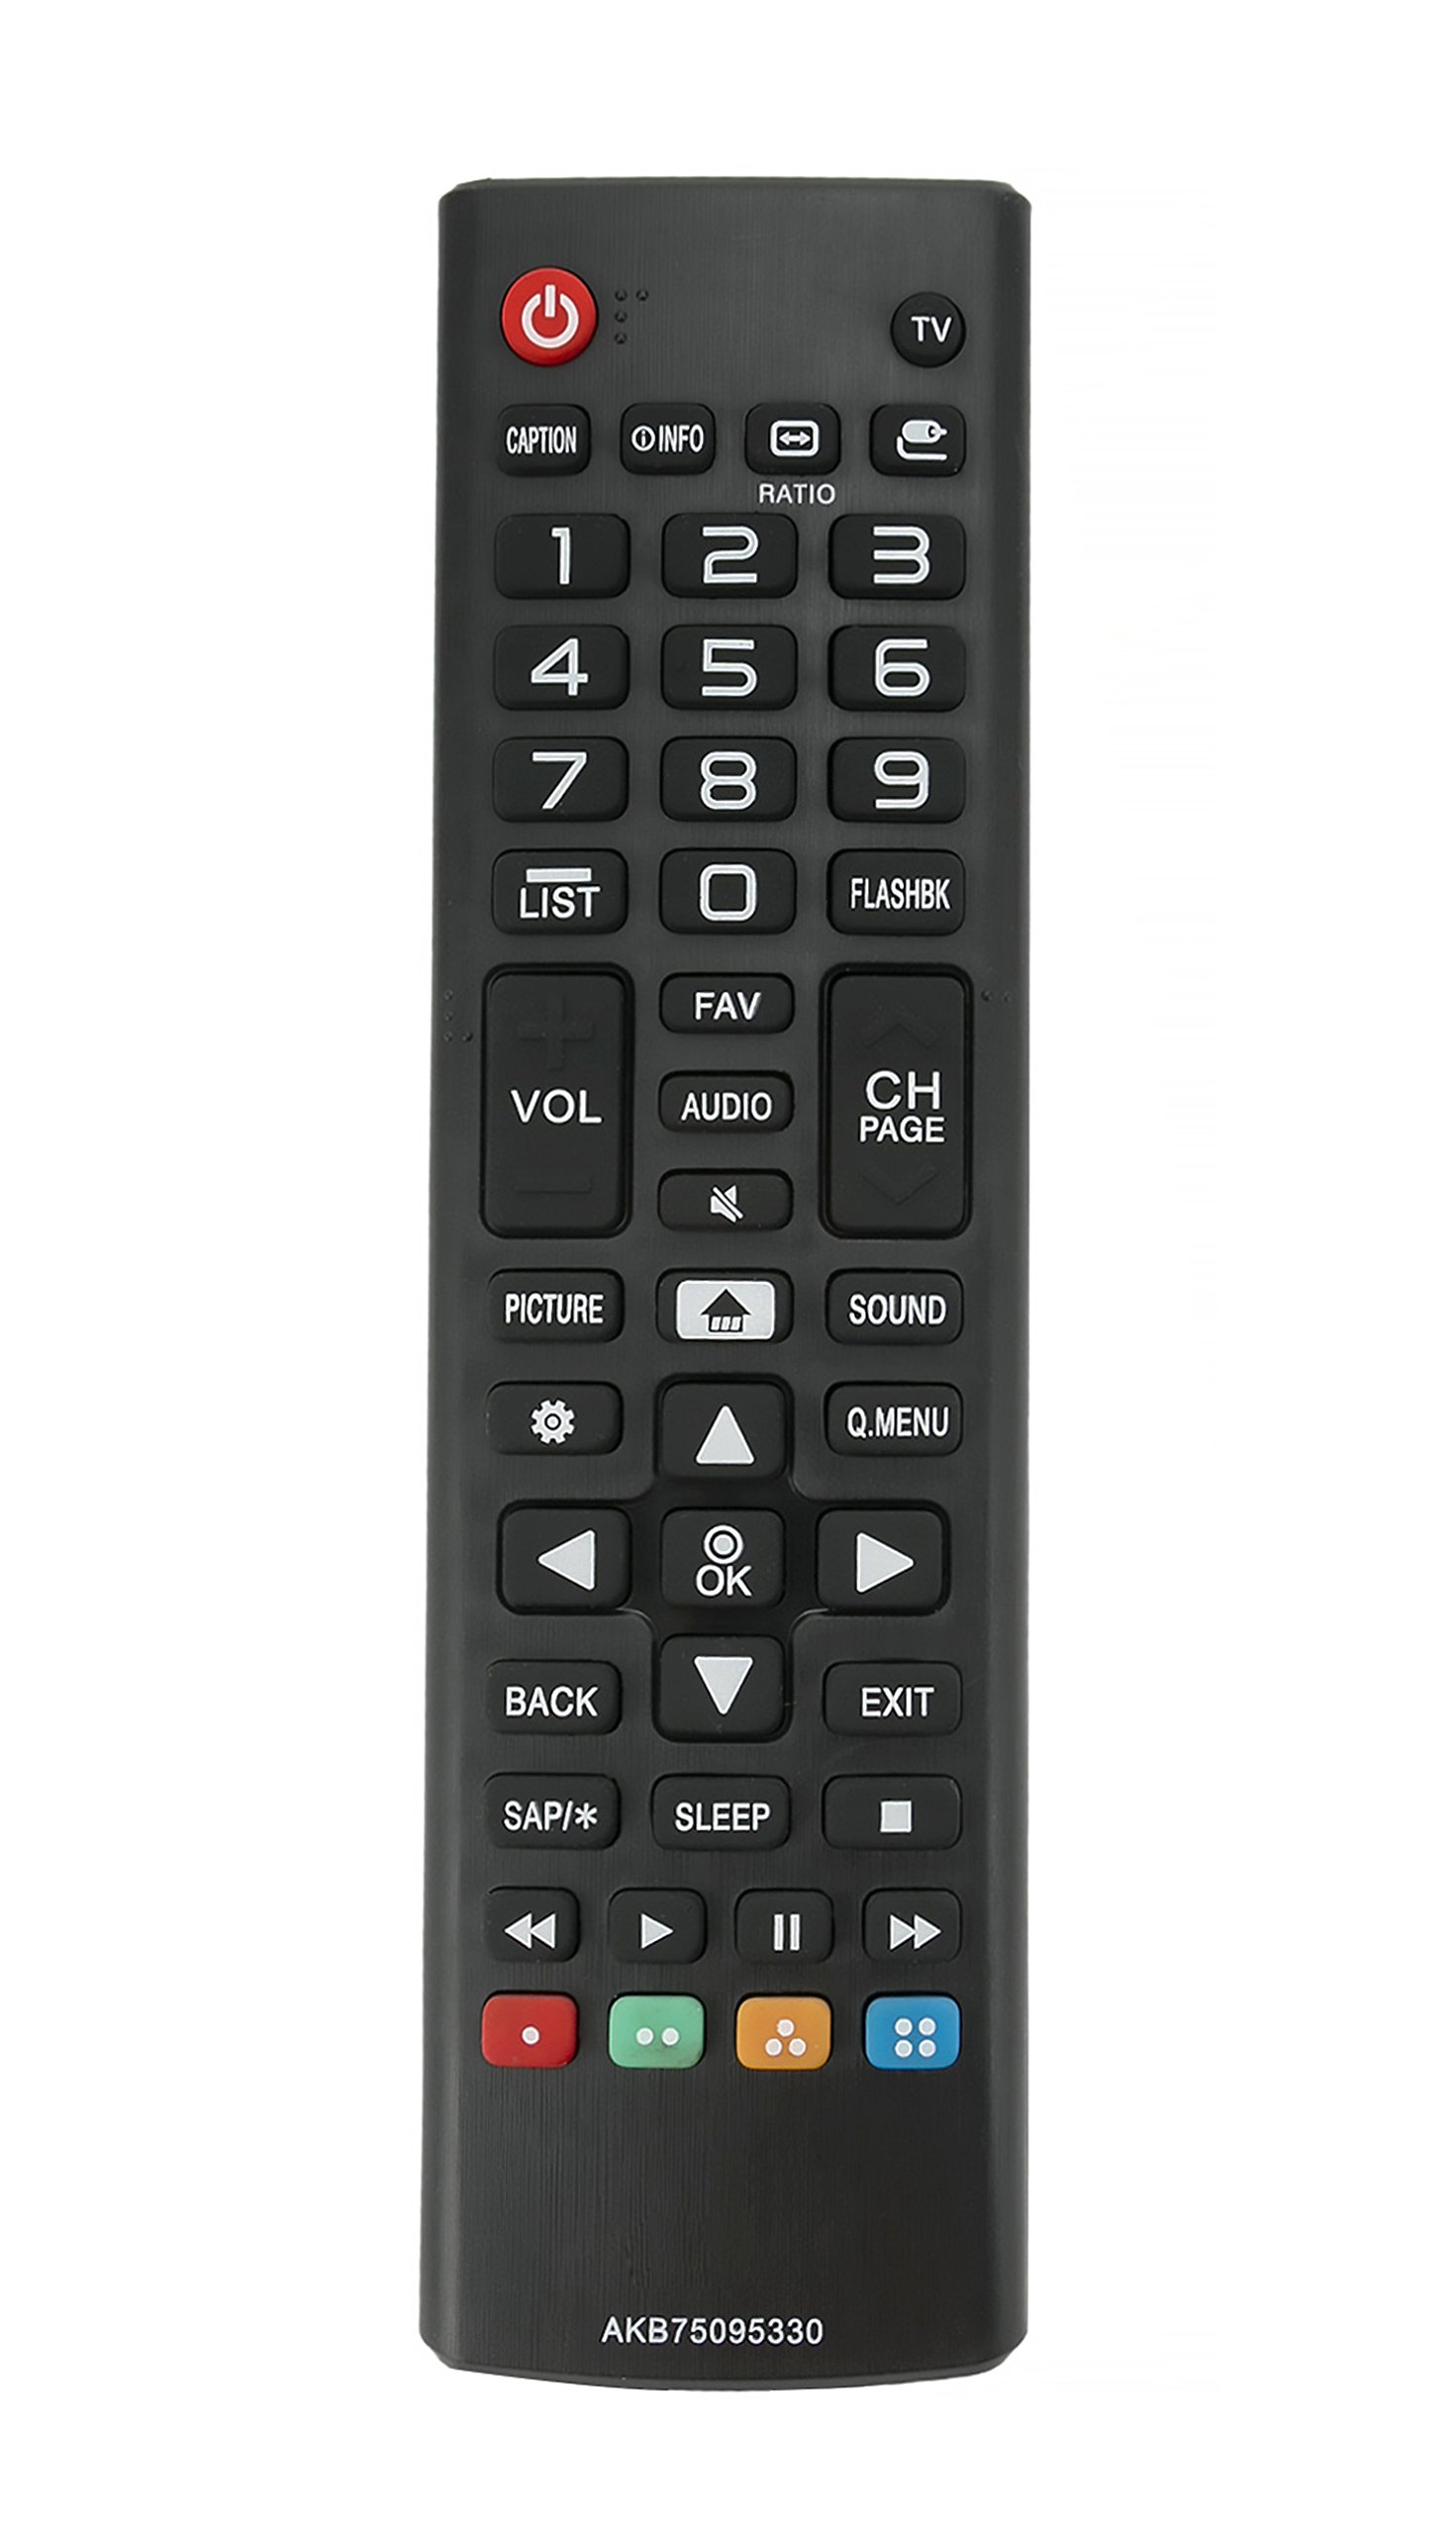 Vinabty New AKB75095330 Replace Remote Control fit for LG 28MT42DF 28LJ400B 43LJ5000 43LJ500M 32LJ500B 28LJ400B-PU 32LJ500UB 32LJ500-UBLED 28LJ430B LCD TV